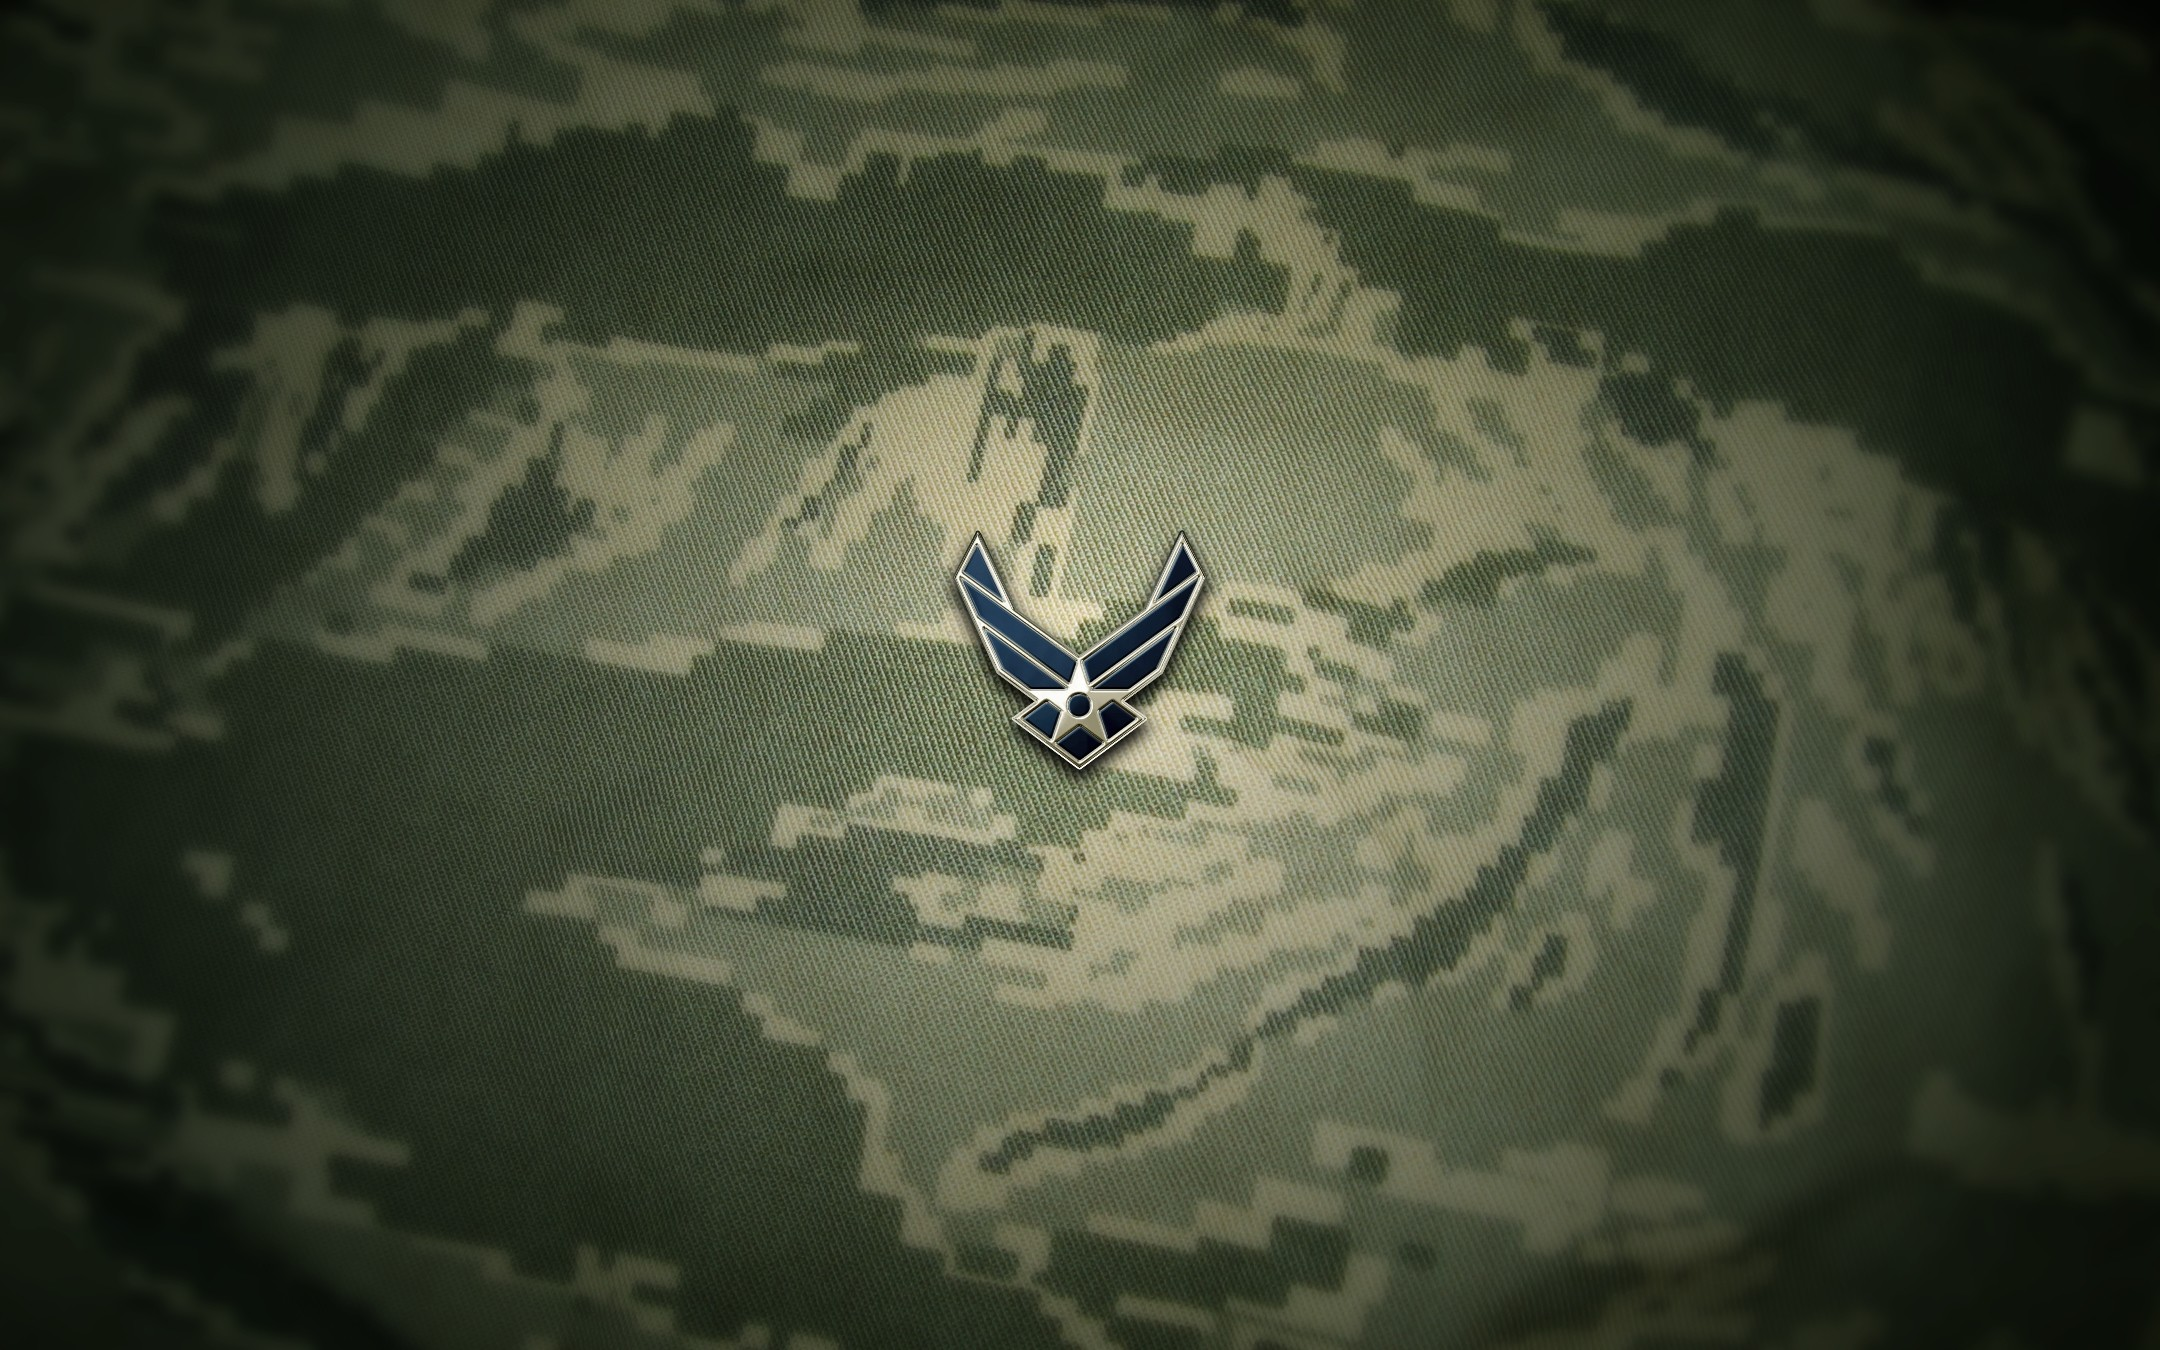 2160x1350 - Air Force Wallpaper for iPhone 4